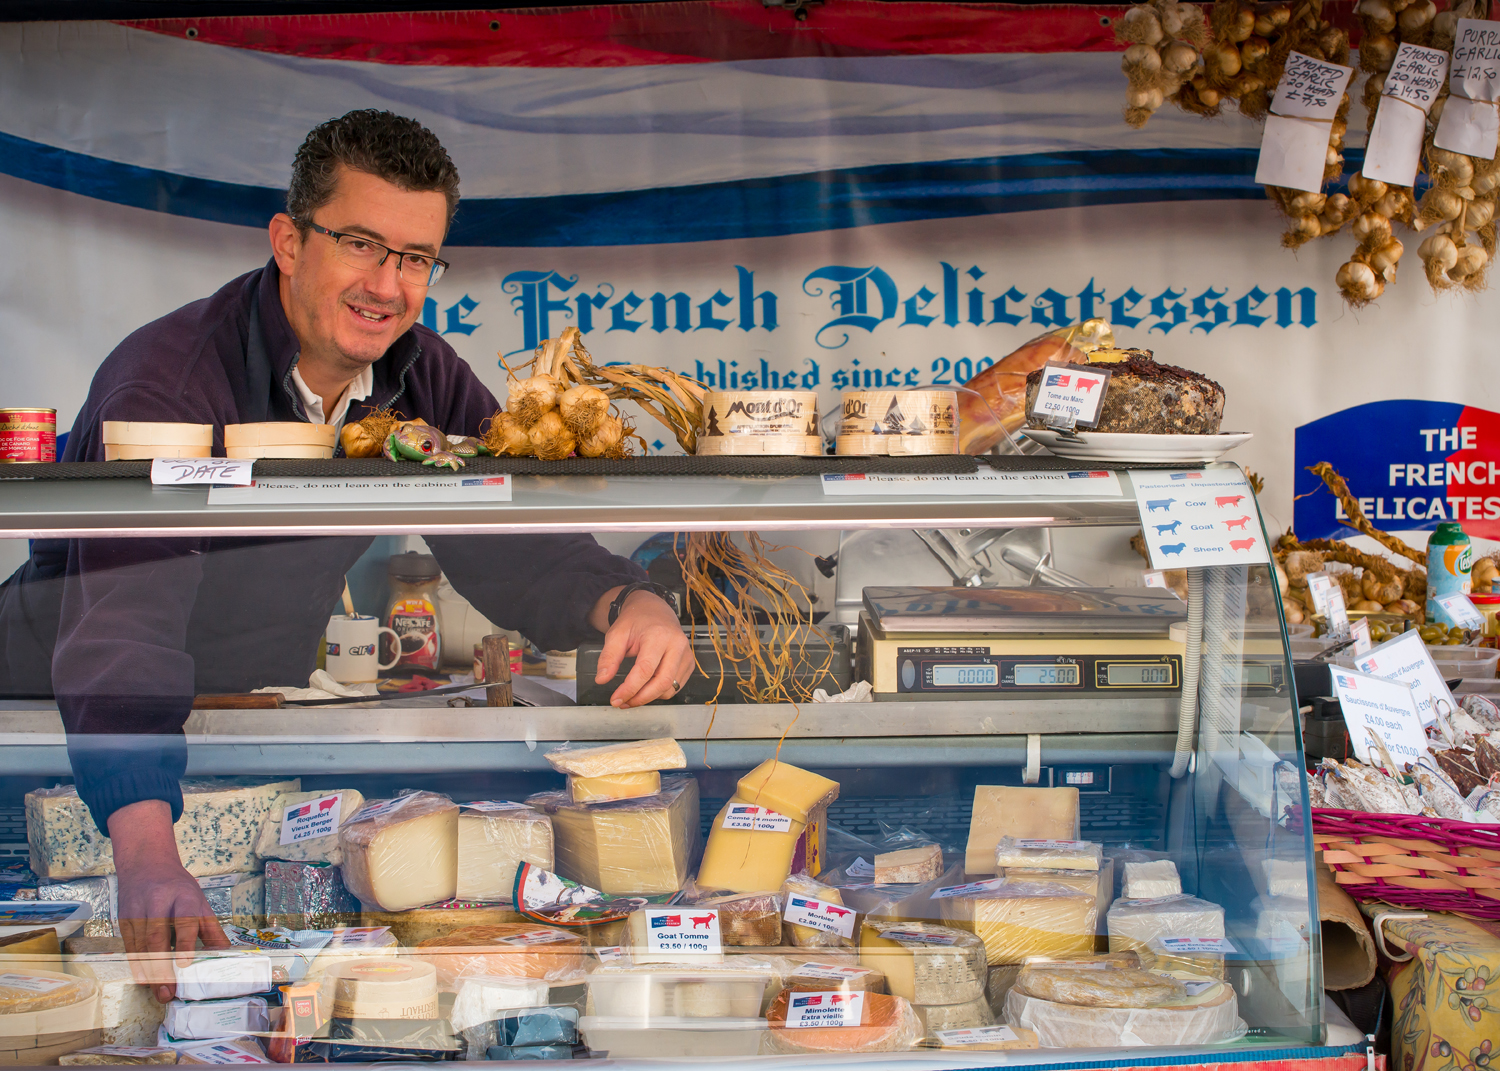 the french delicatessen